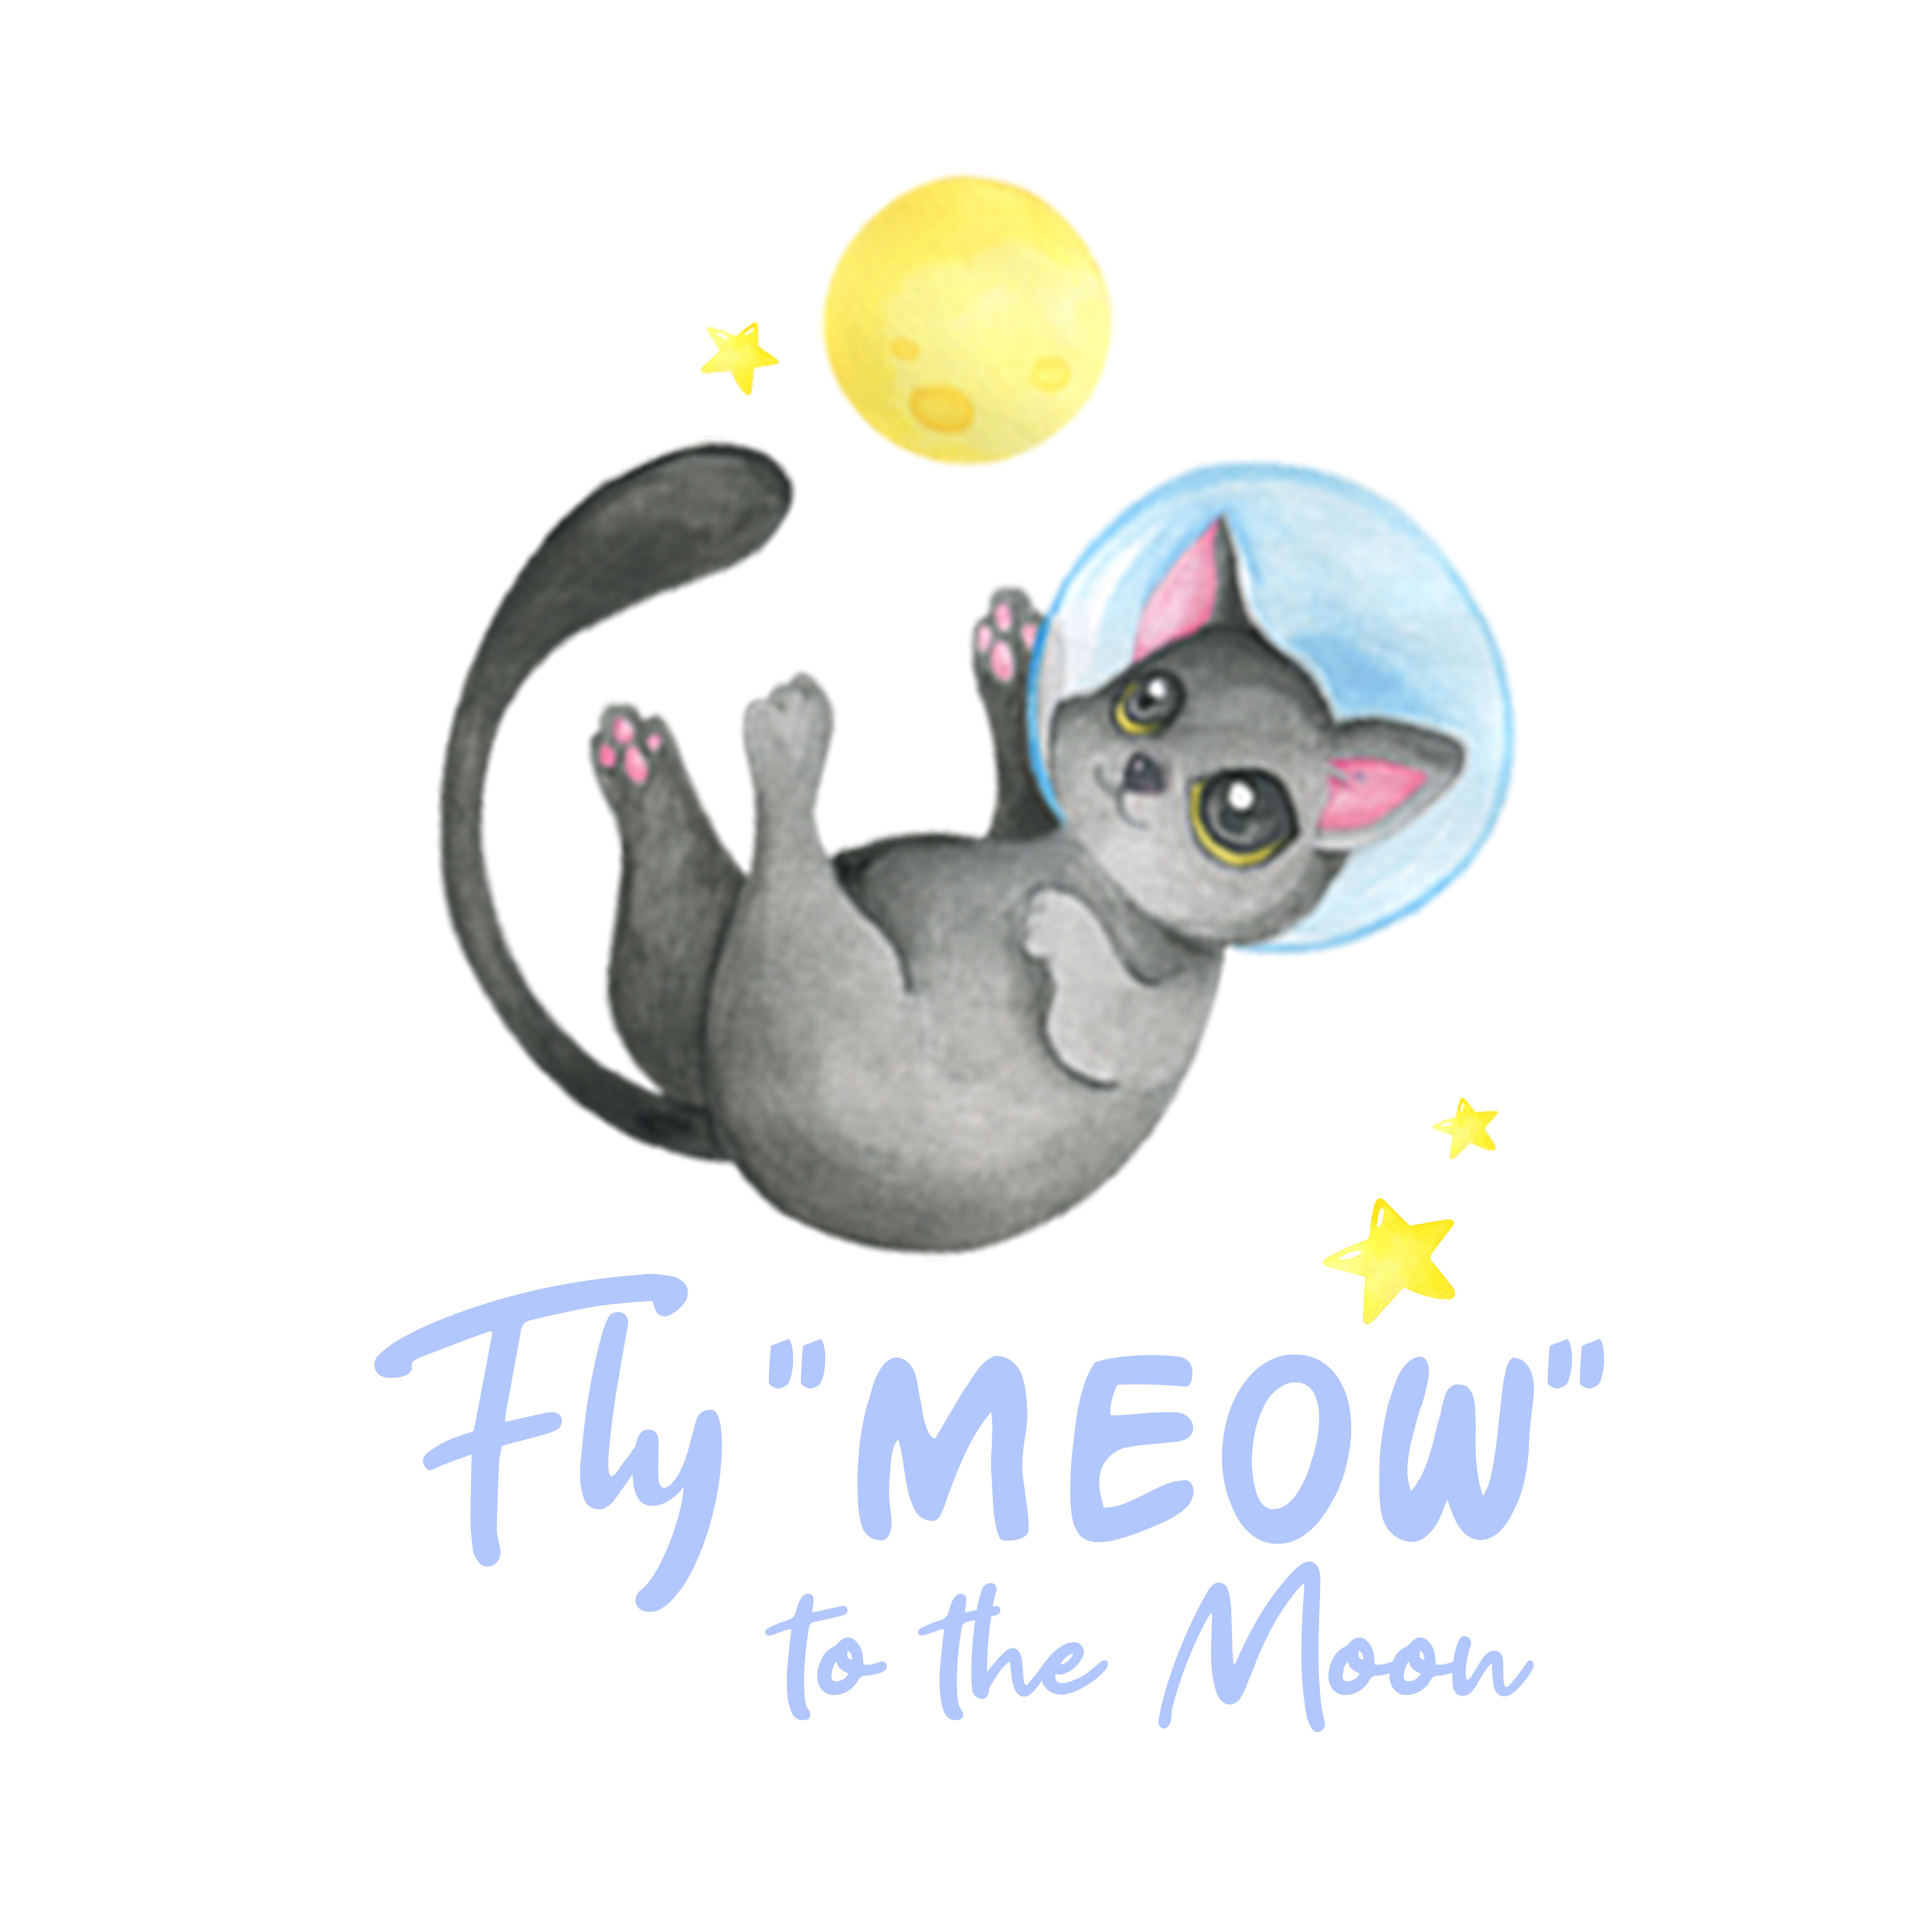 Flymeowtothemoon's profile picture